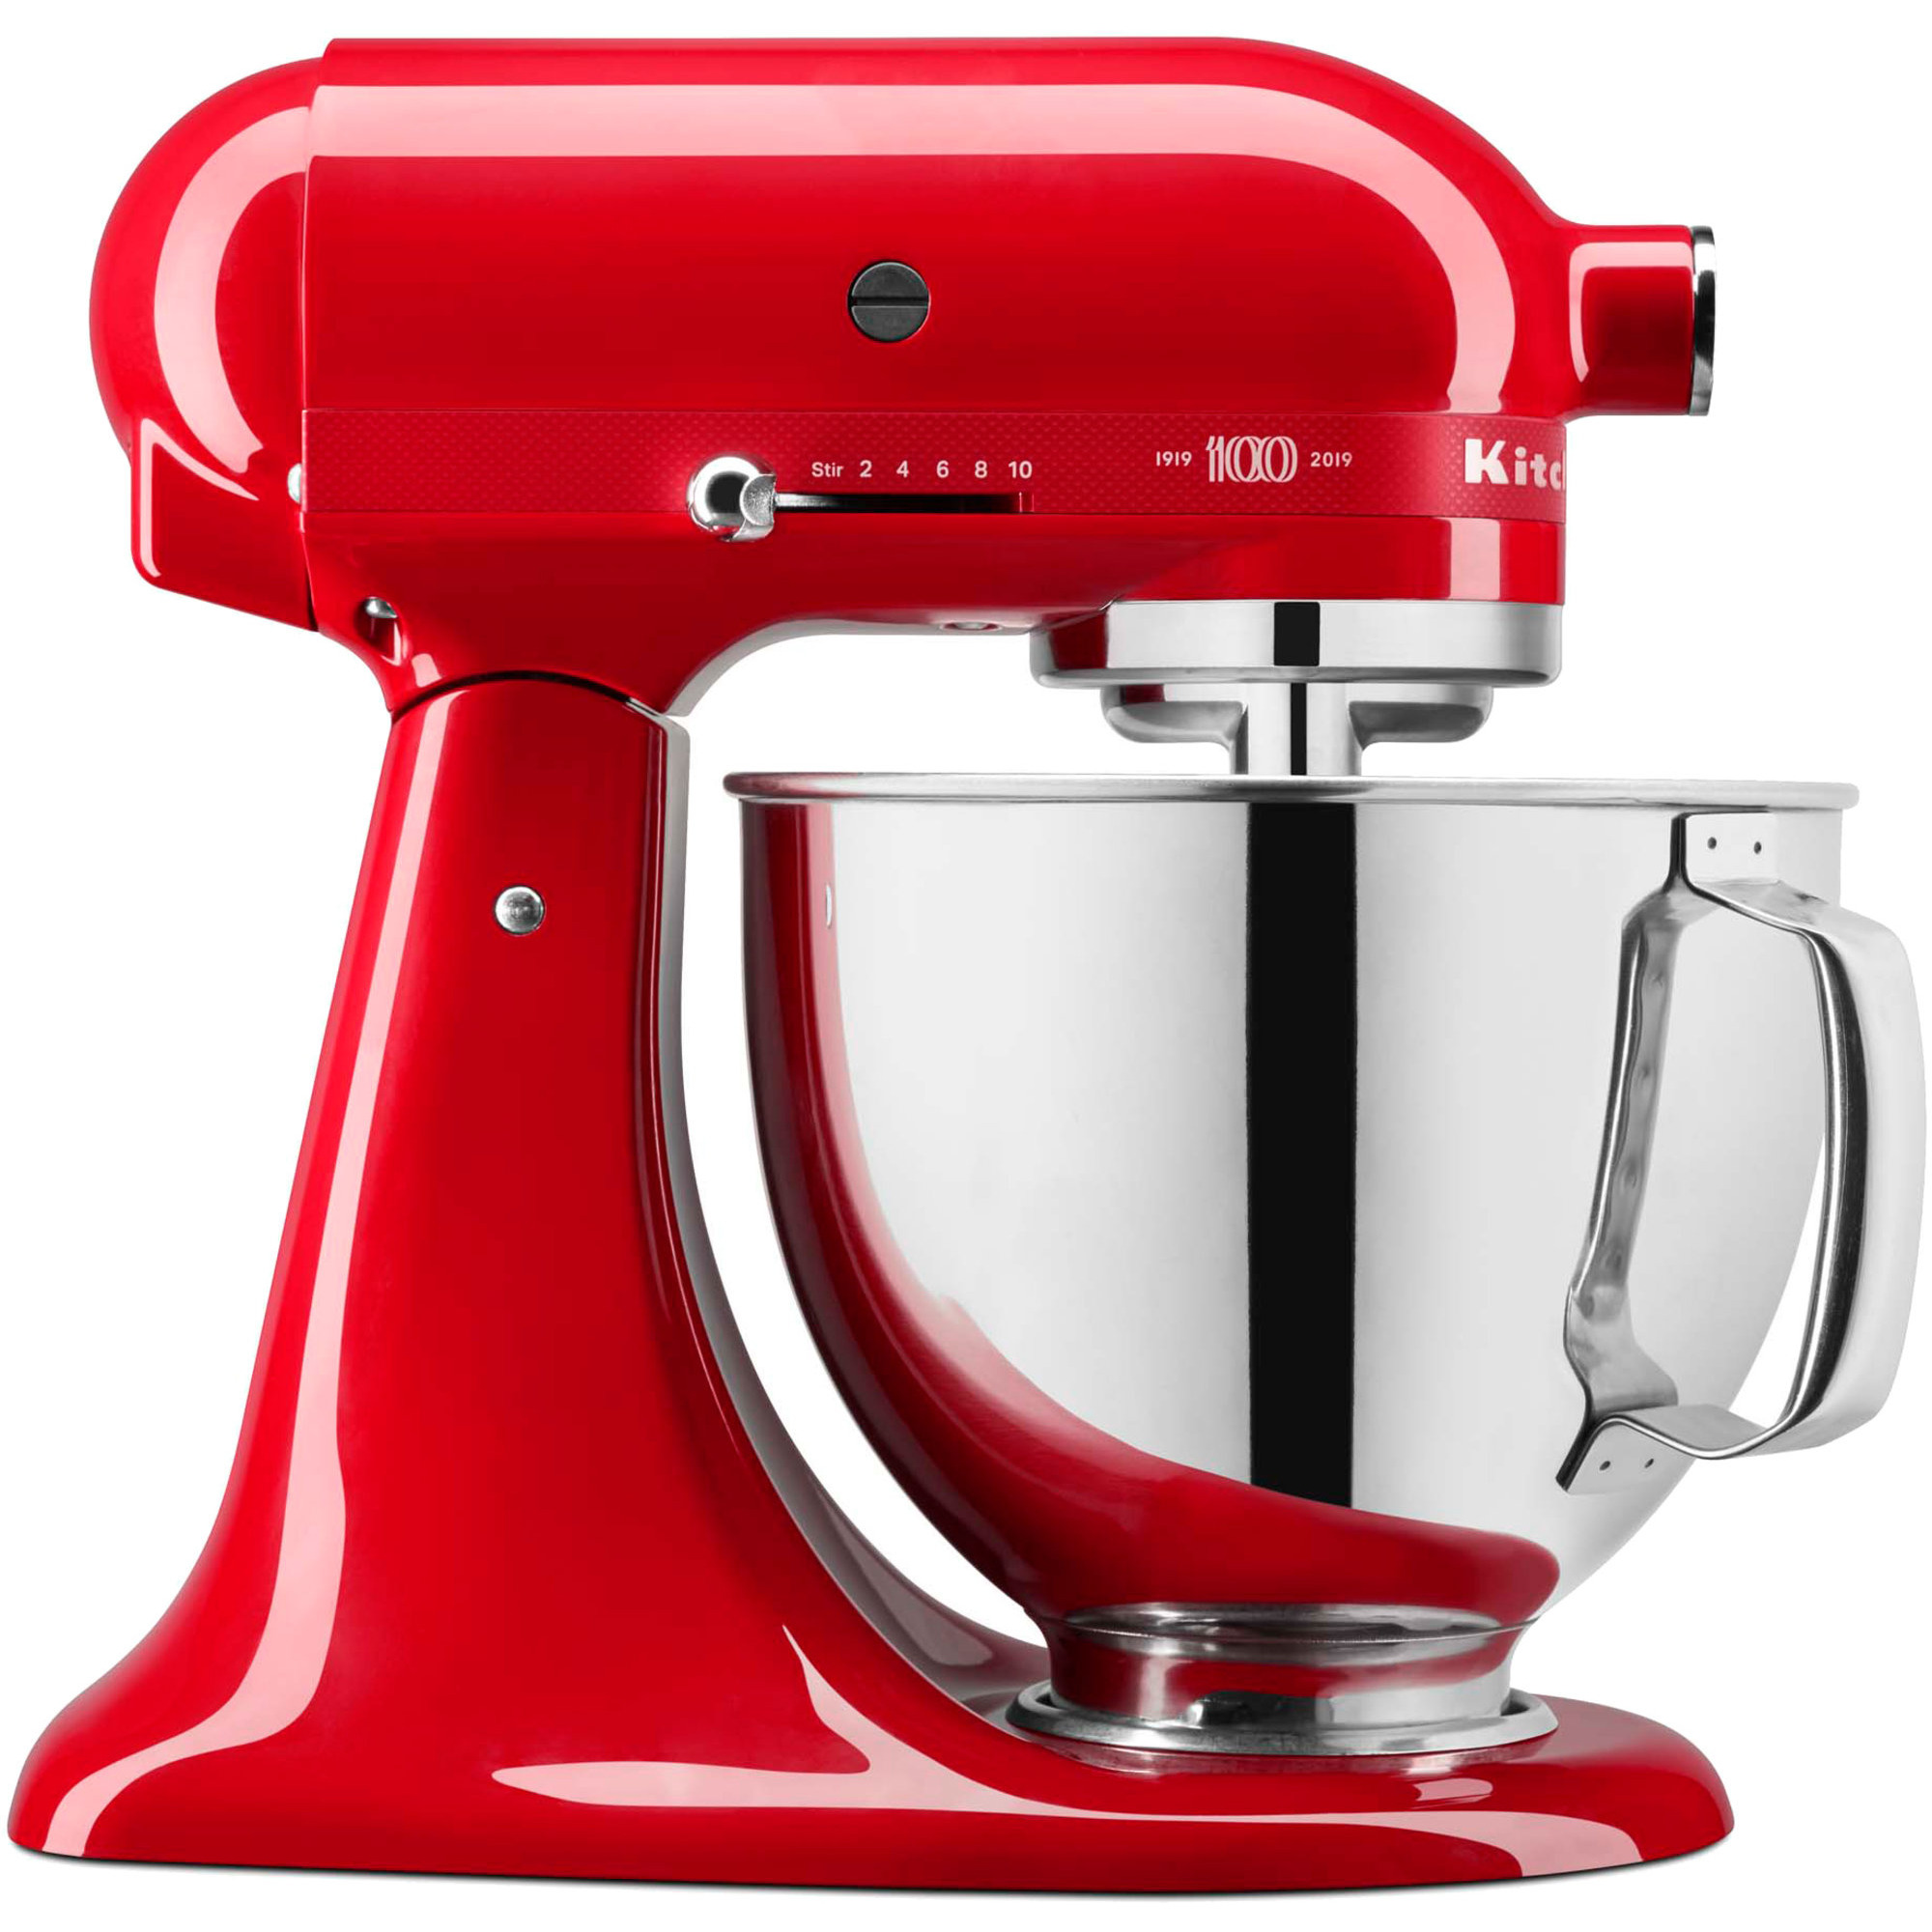 KitchenAid Artisan 100 Year Limited Edition – Queen of Hearts Collection